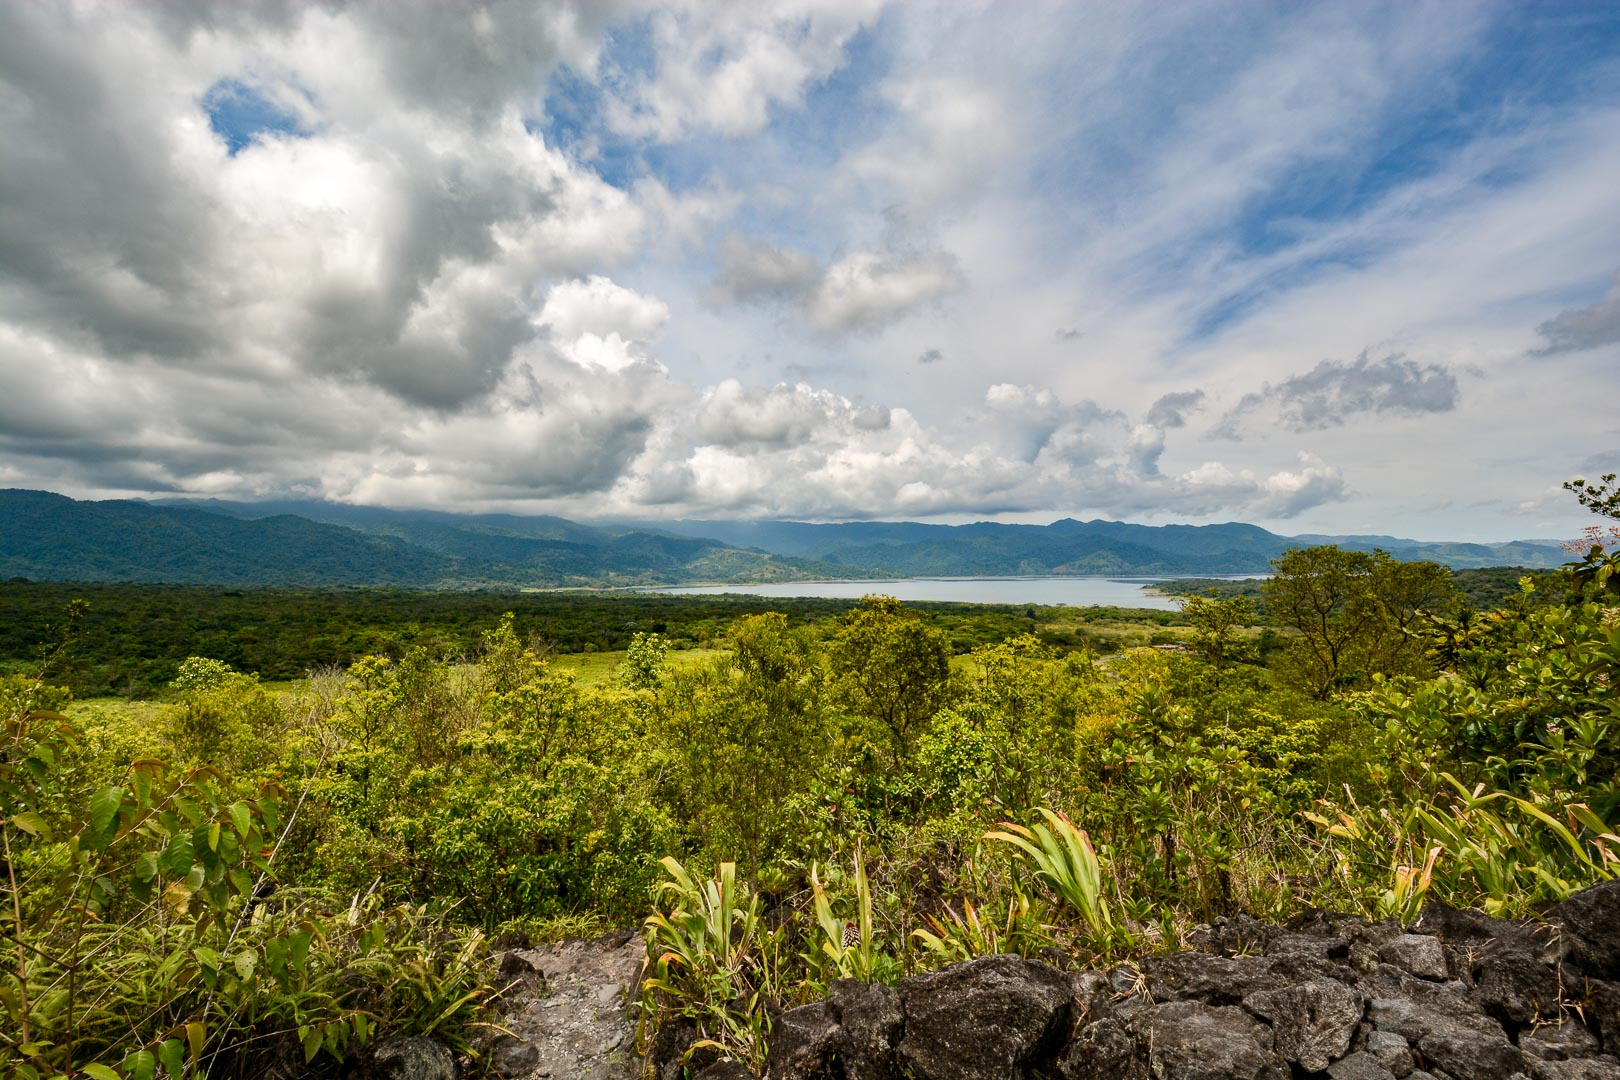 Another viewpoint of Lake Arenal